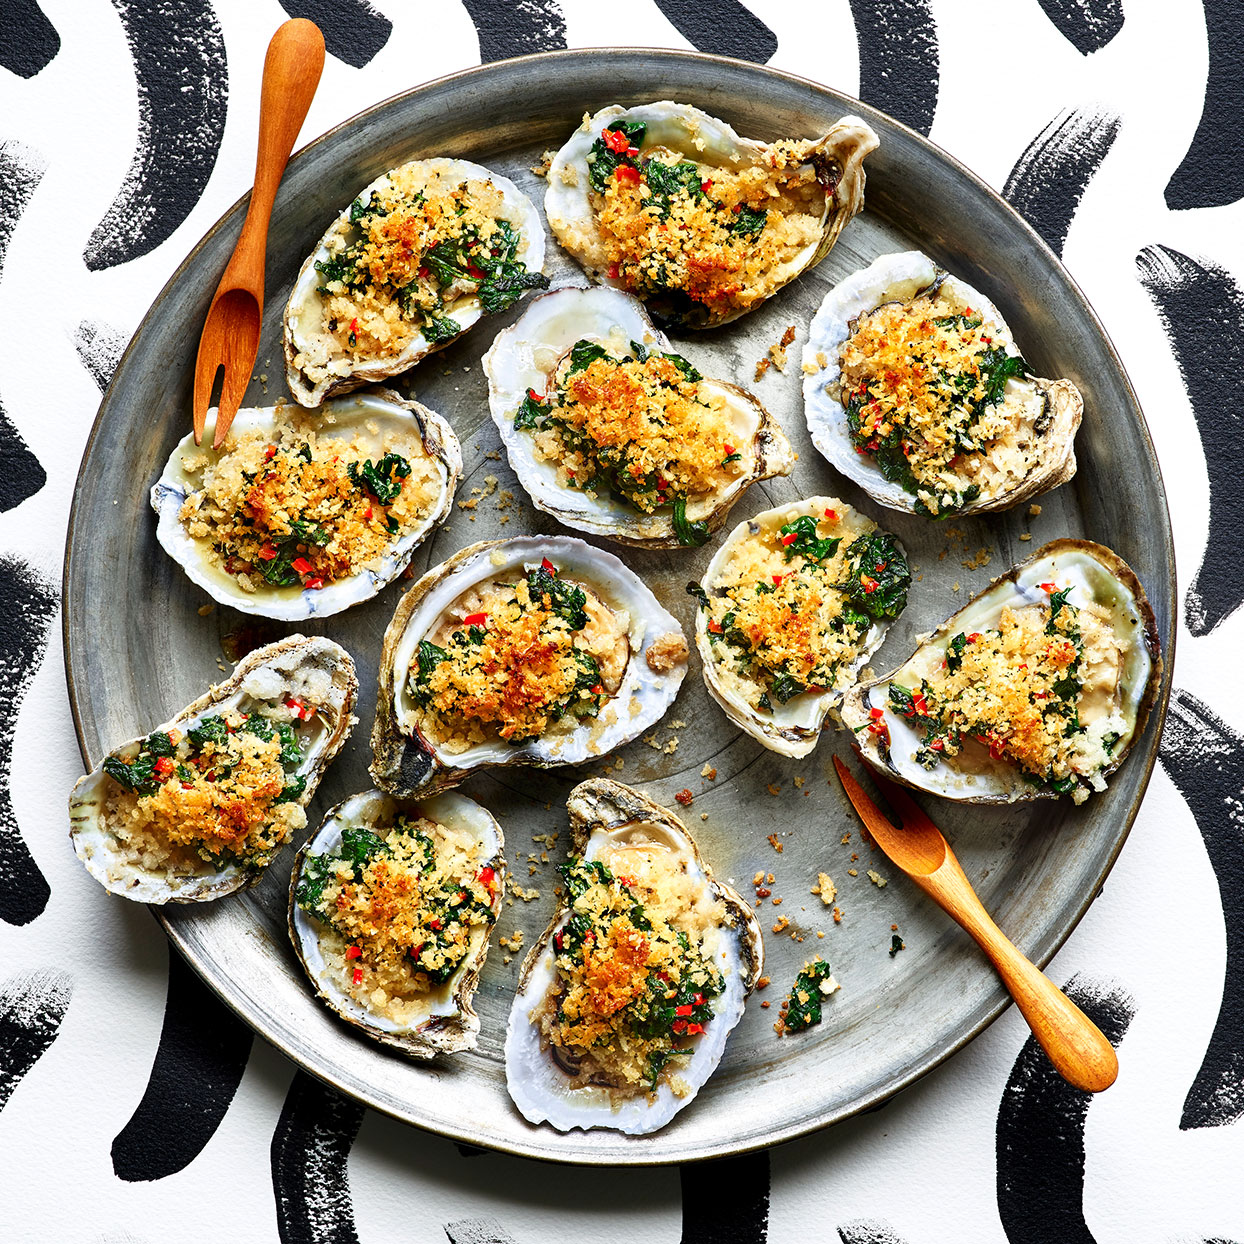 These succulent baked oysters thrill with spicy spinach and a crispy cheese topping. Source: EatingWell Magazine, January/February 2020